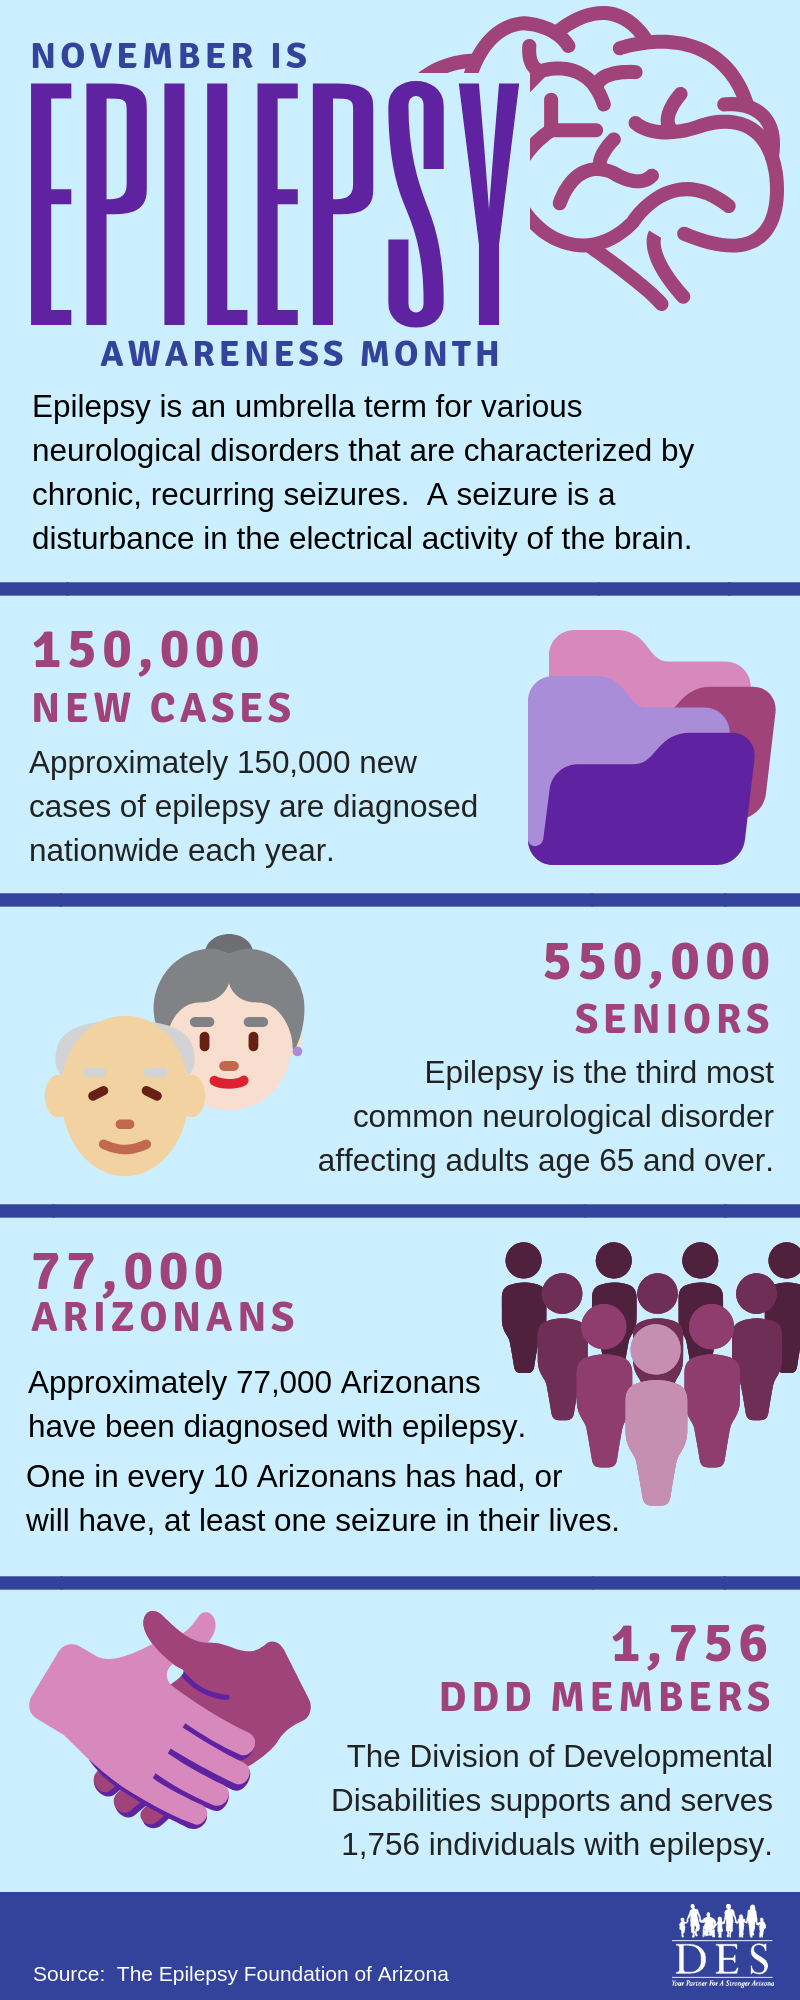 Facts and figures about epilepsy